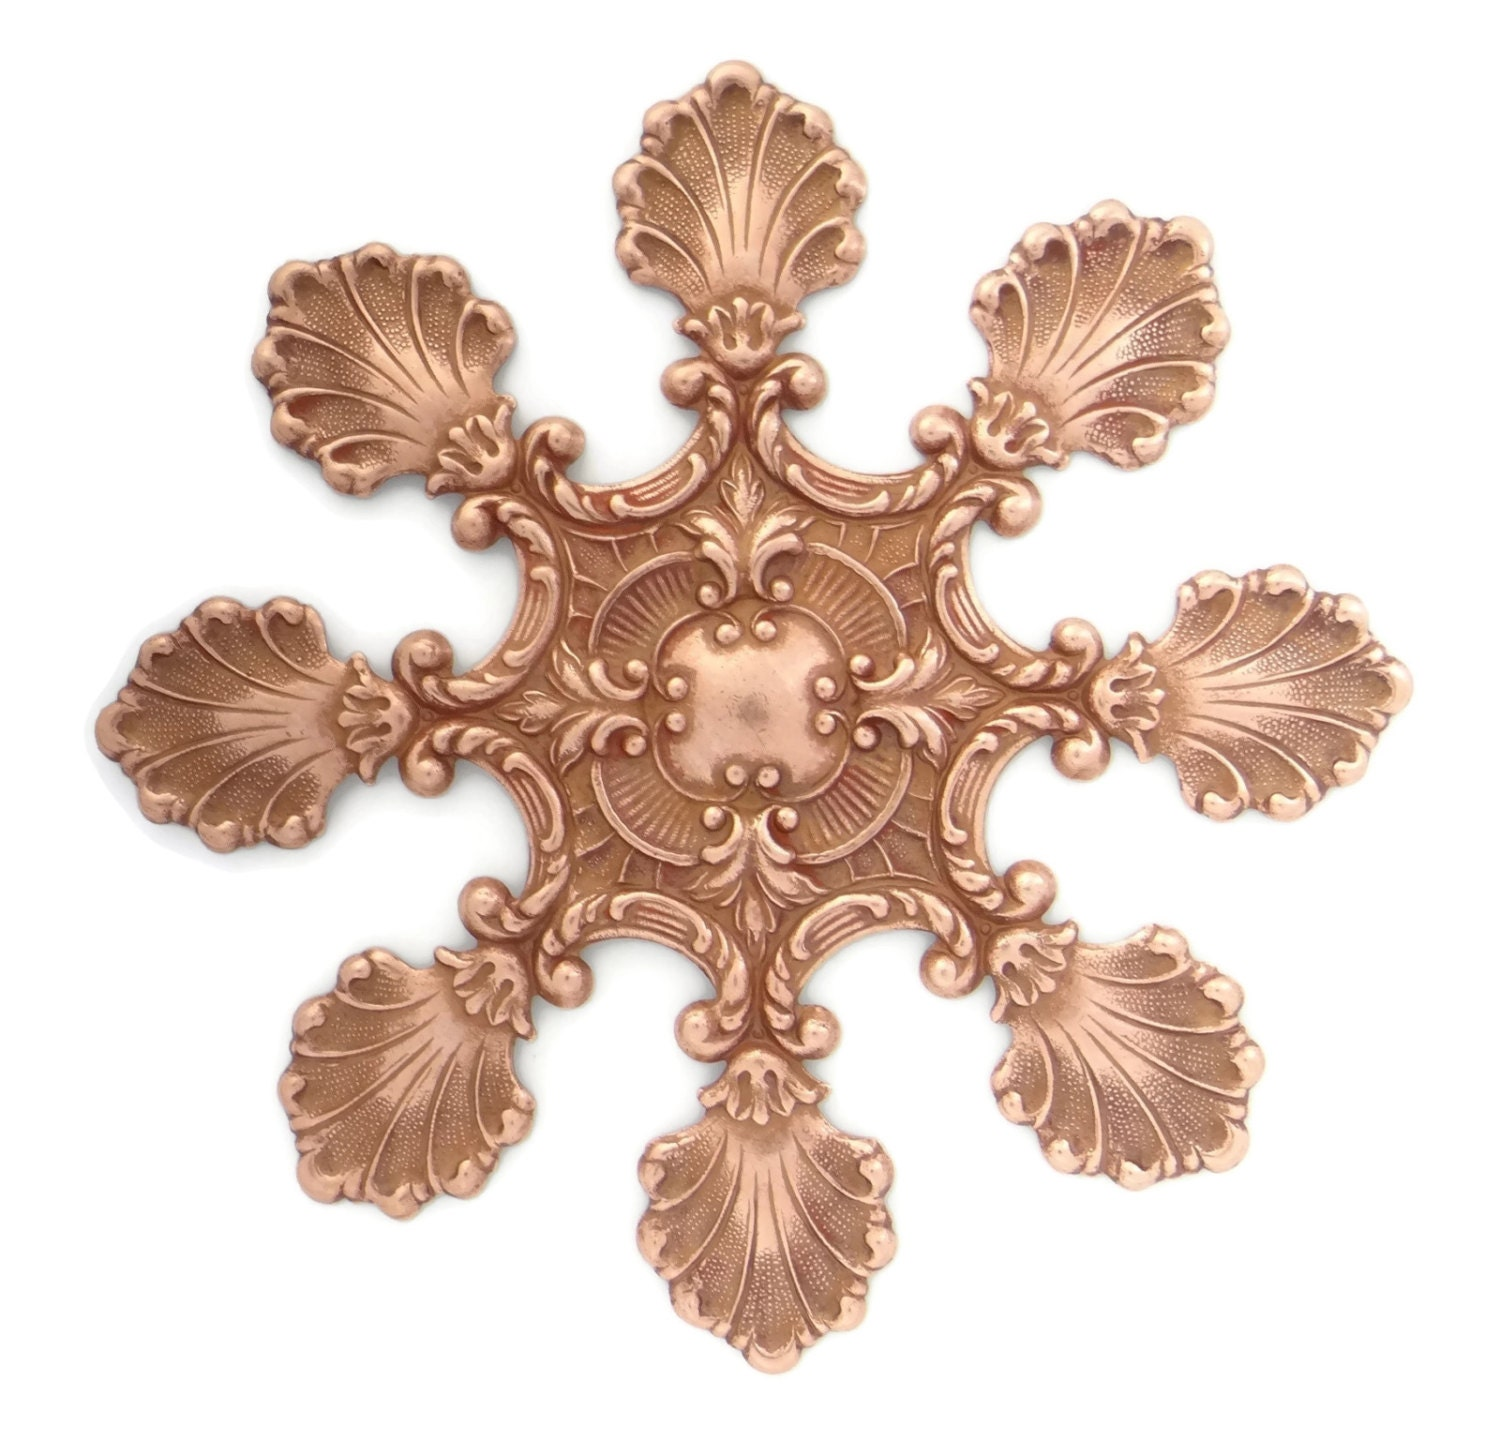 16 Rose Gold And Copper Details For Stylish Interior Decor: Copper Rose Gold Plated Brass Stamping Victorian Style Huge